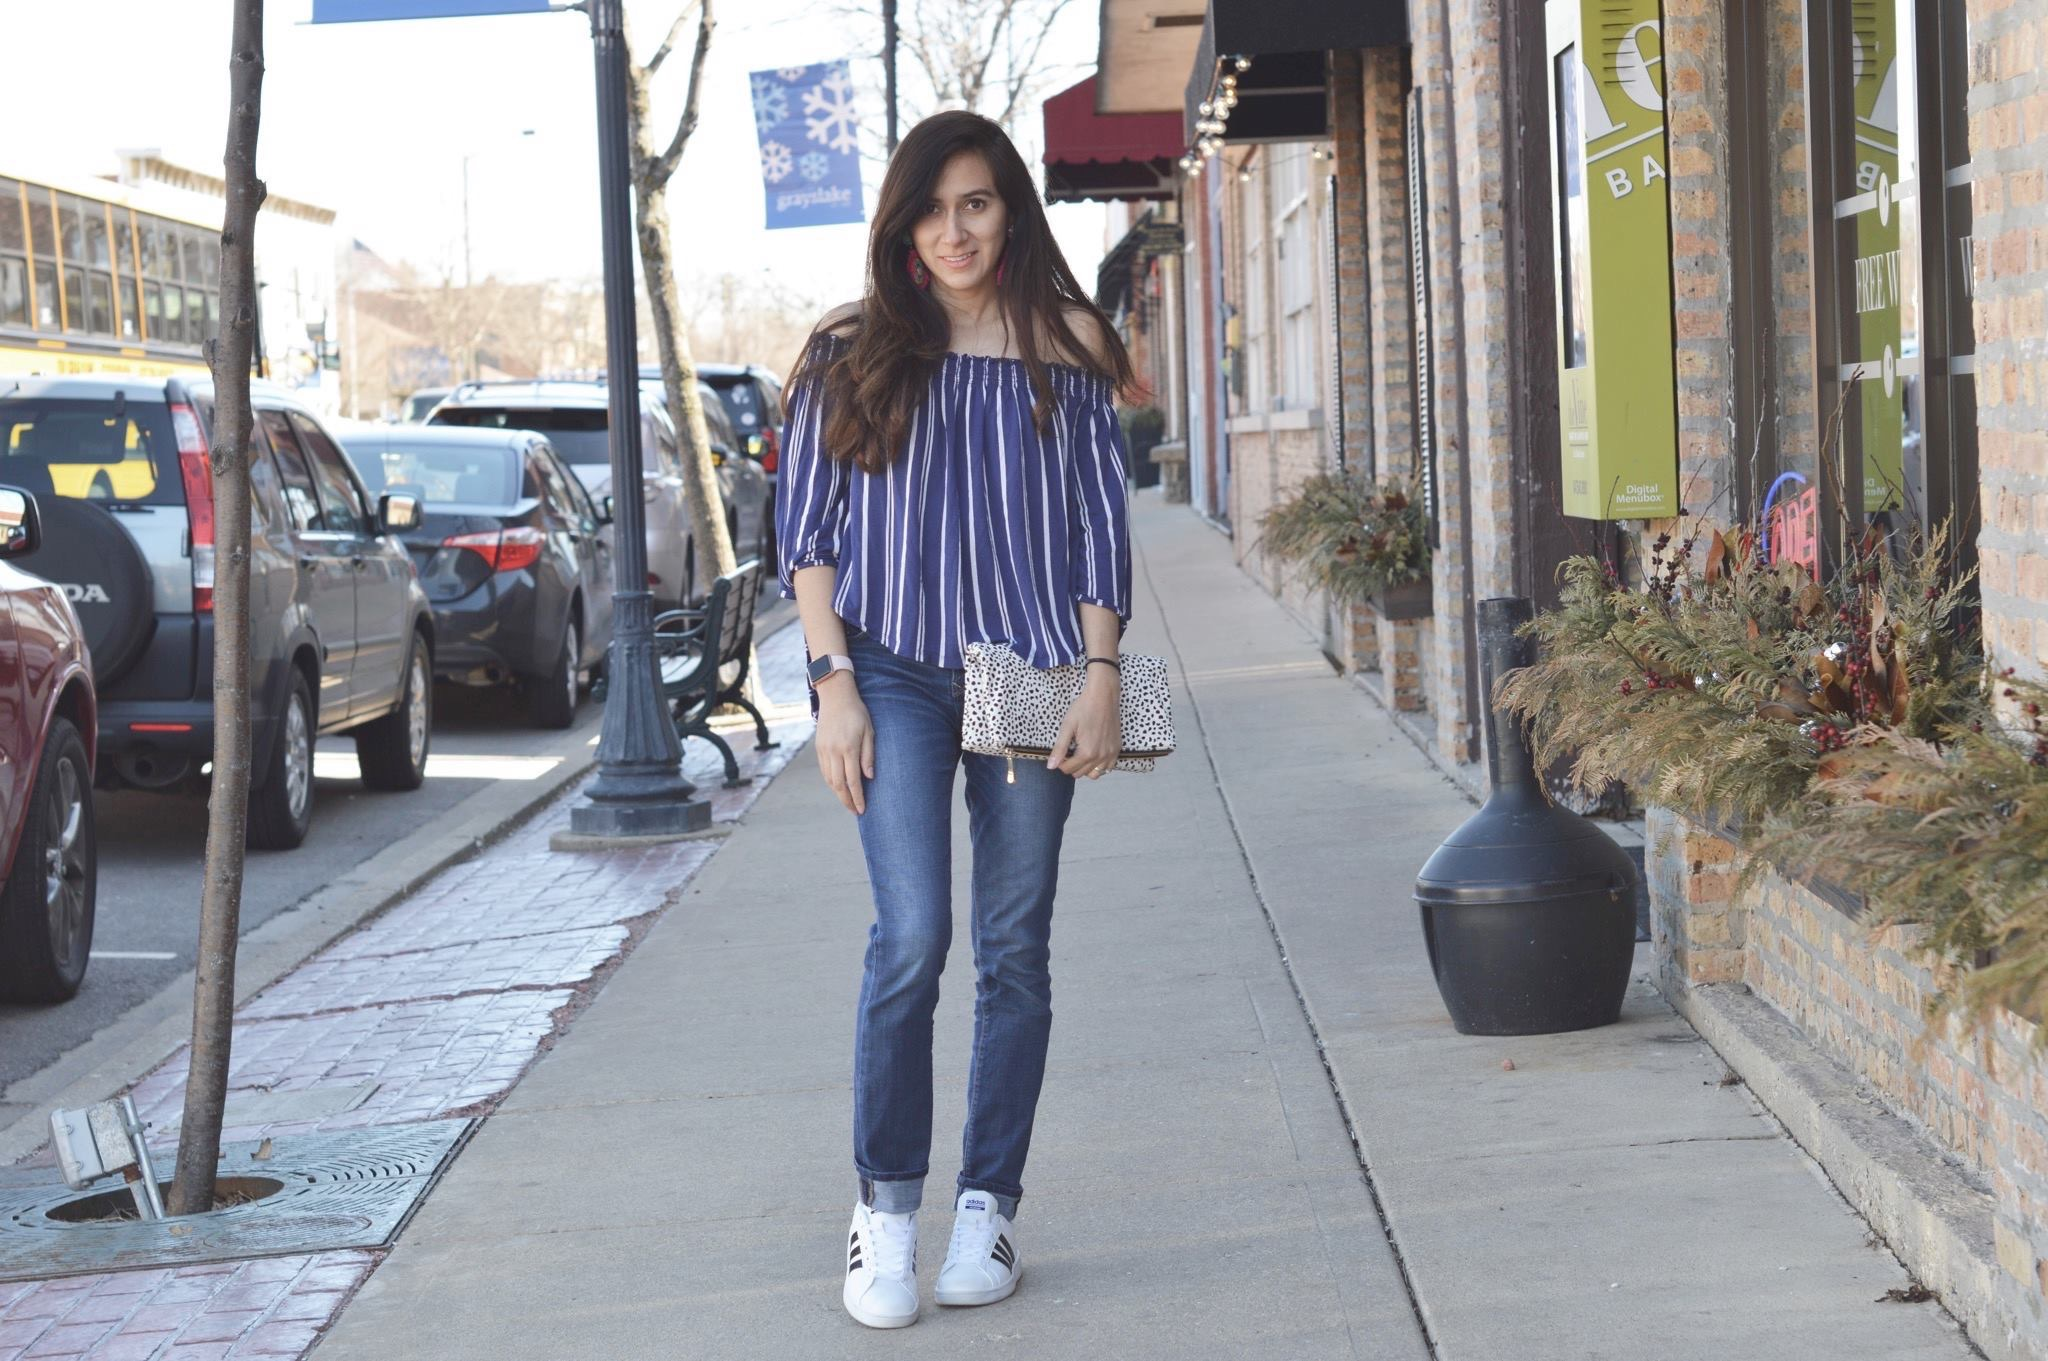 perfect OTS tops, Style, adidas, panacea, liketoknowit, Travel Size Beauty, Beauty Supplies, spring shopping, women clothes, bauble bar, statement earrings, spring fashion, spring fashion, shop my blog, shopping, shop what I wear, fashion blog, fashion blogger, fashion, statement jewelry, kohl's